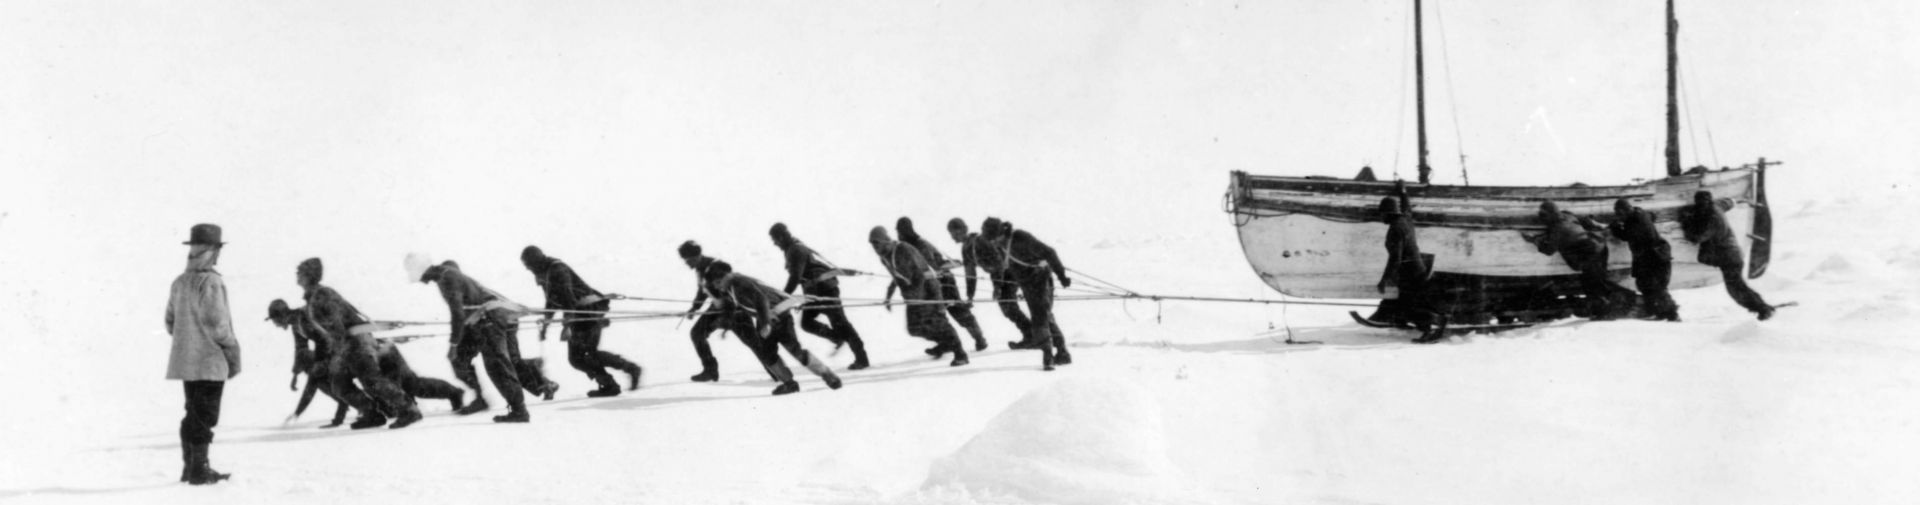 Ernest Shackleton Endurance Expedition